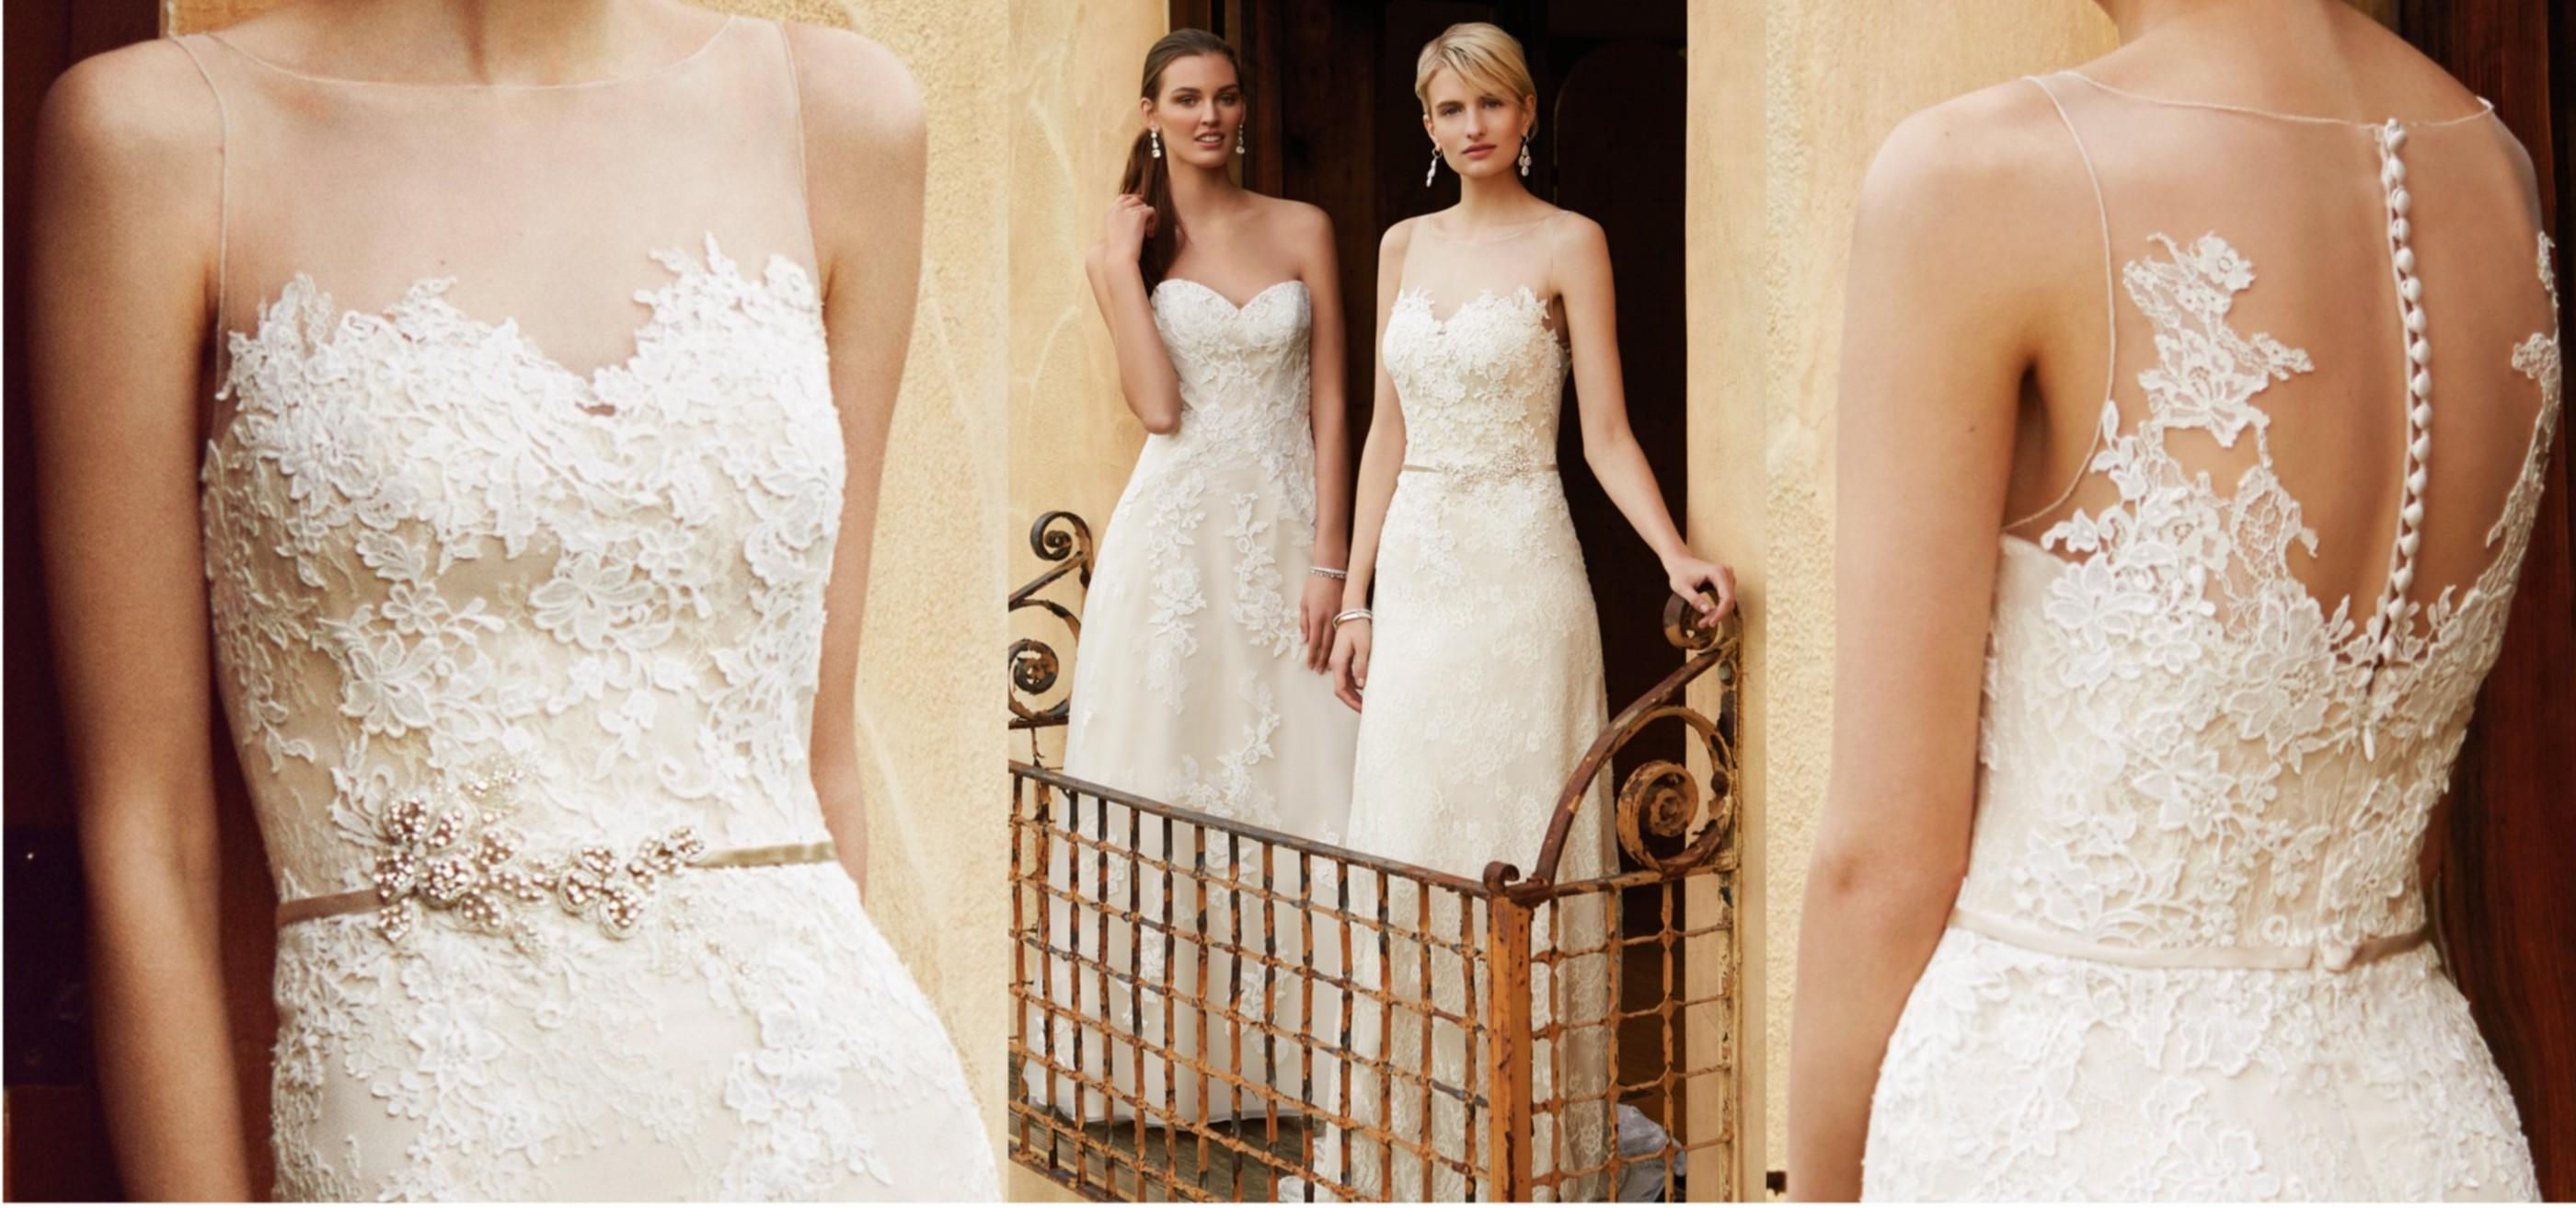 Sposabella Bridal Gowns Durban - Wedding Dresses